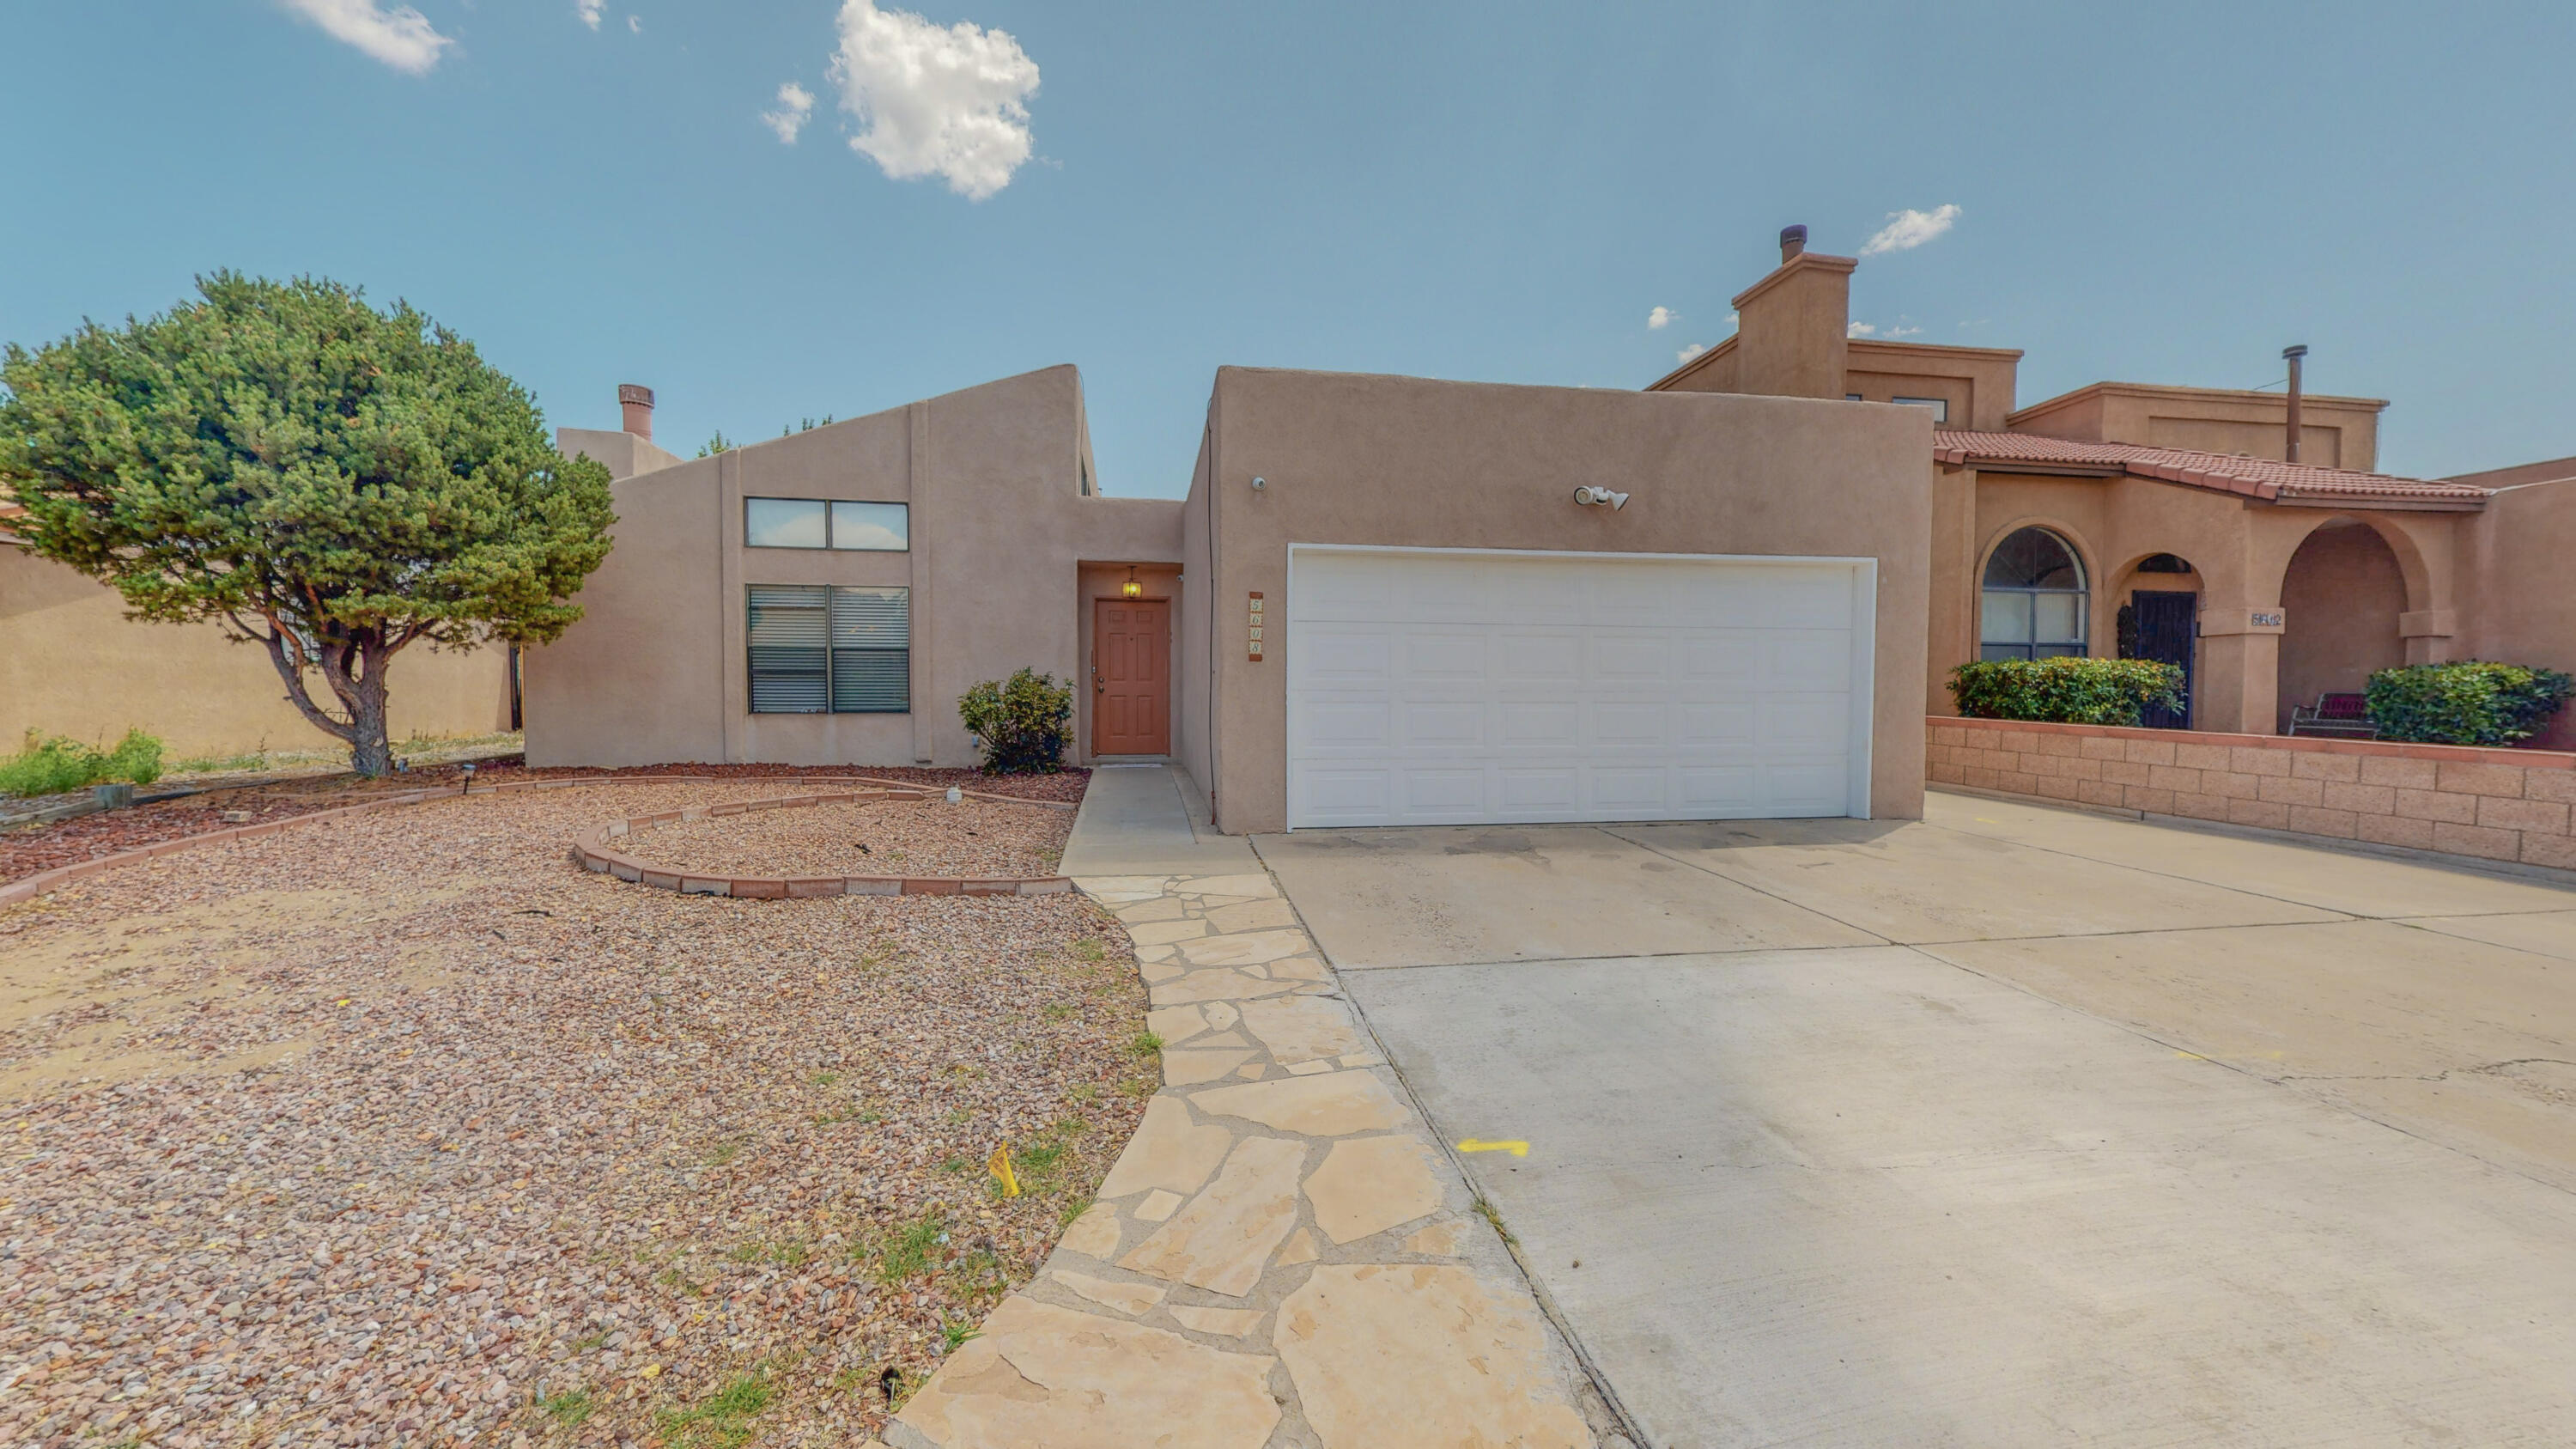 Well taken care of and updated home in the popular Taylor Ranch area of Albuquerque's Northwest Heights. This Single Story home features a bright, open floor plan with three Bedrooms, 1.75 Bathrooms and a 2 Car Garage. The home is highlighted by a Living Room with a wood burning fireplace, 16'' travertine tiled floors, built in surround sound speakers and a Ceiling fan with light kit. The Dining area has a door that opens to the Rear Covered Patio. The Kitchen has upgraded appliances, upgraded plumbing fixtures, upgraded Travertine tiled floors and counter tops. The counters have tiled back splash. The Kitchen cabinetry has all been upgraded. All Bedrooms have Ceiling Fans with light kits. All interior doors are raised panel doors. Family friendly back yard with